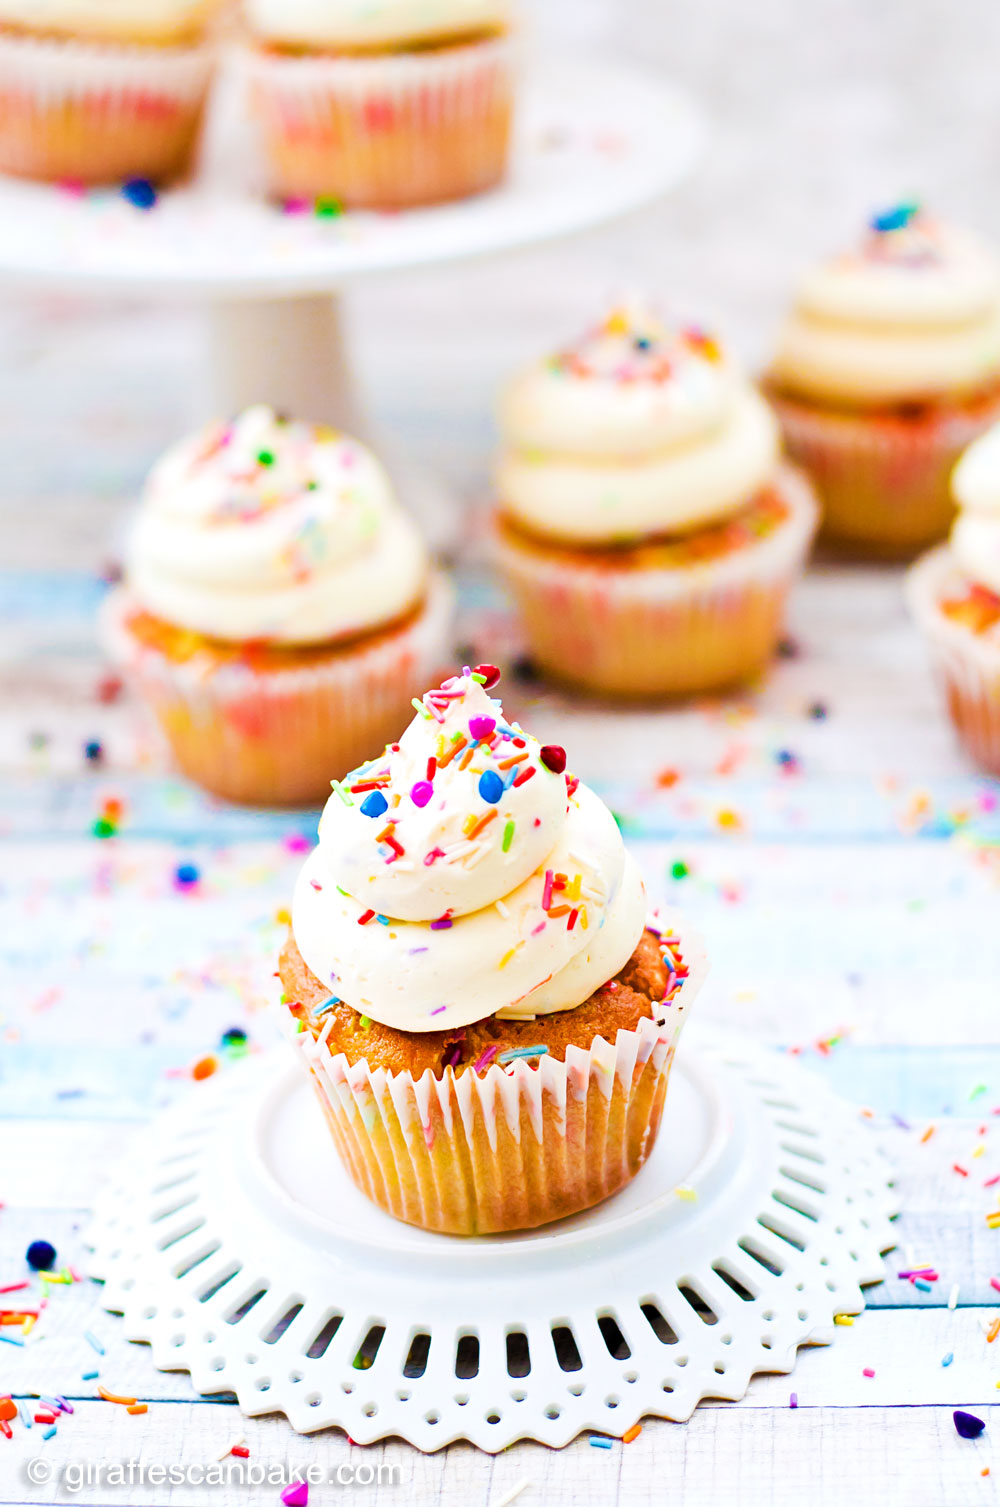 Fluffy vanilla gluten free cupcakes loaded with sprinkles, topped with delicious whipped vanilla buttercream and even more sprinkles. These Funfetti Cupcakes are the perfect way to celebrate my (or your) birthday!